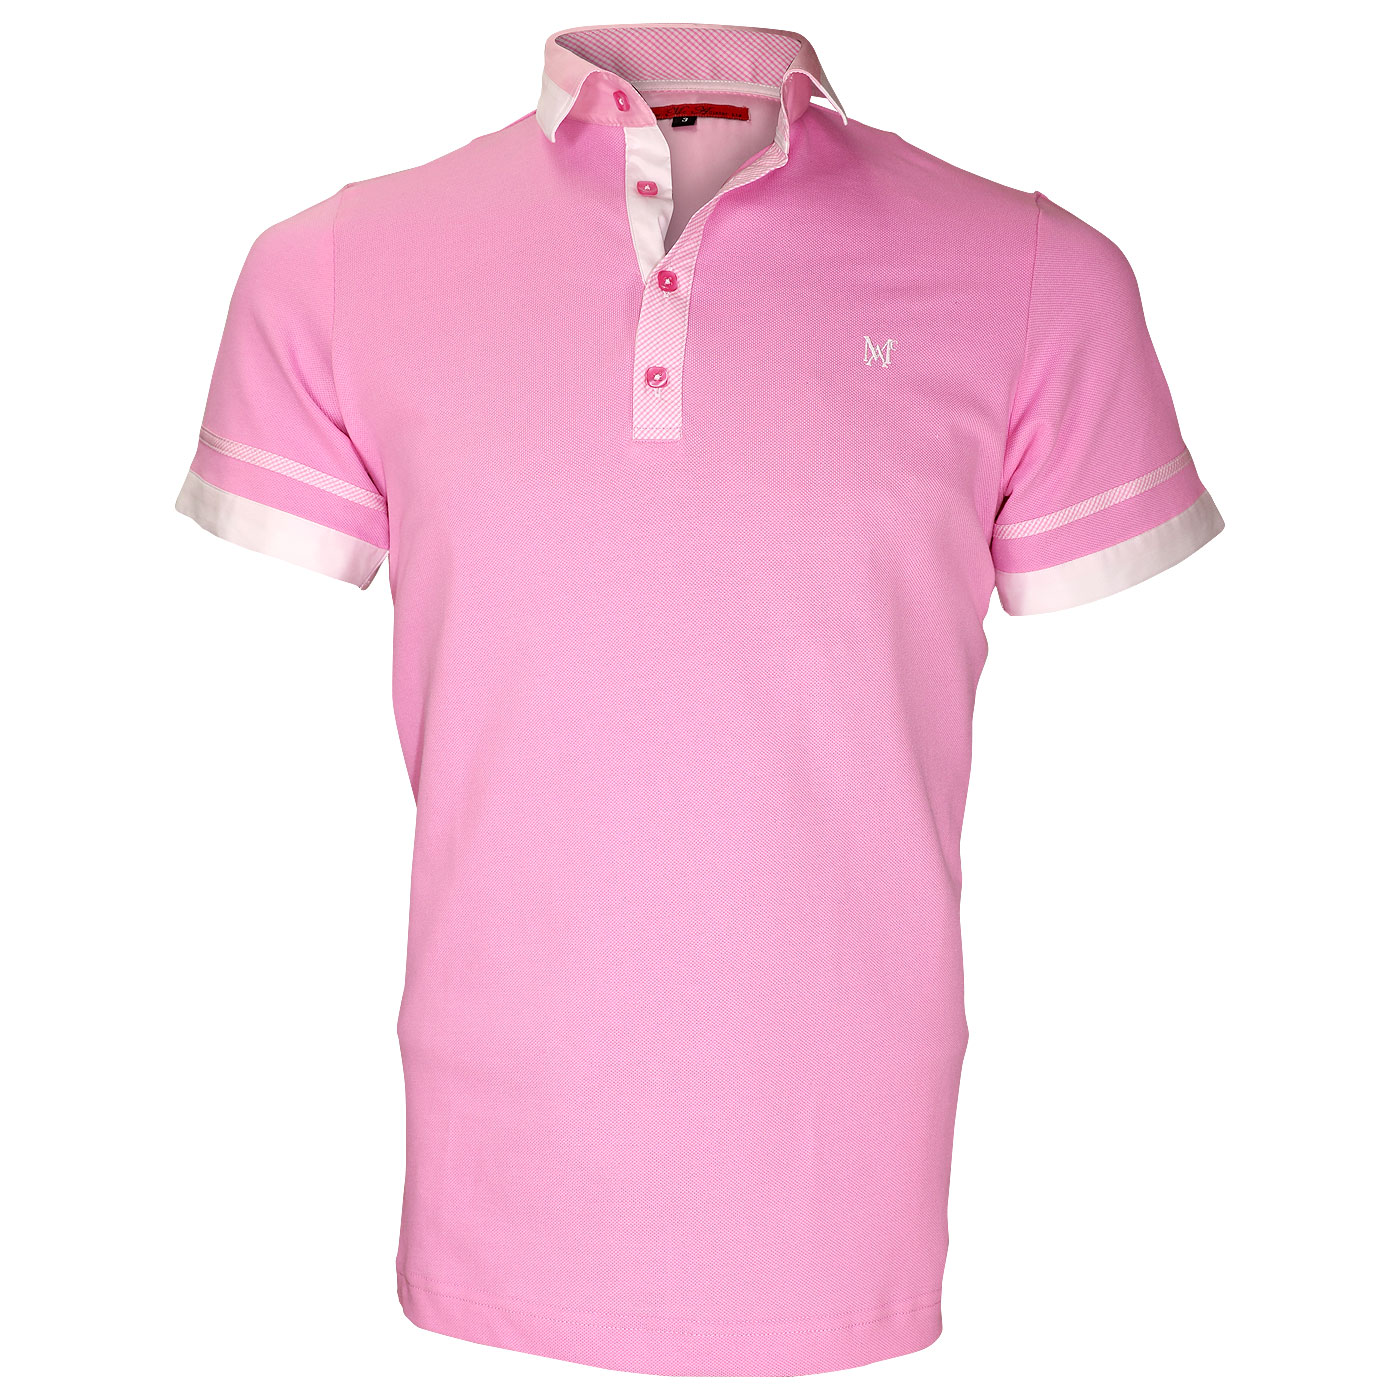 Shirt or Polo: Choice among more than 1000 models on Webmenshirts